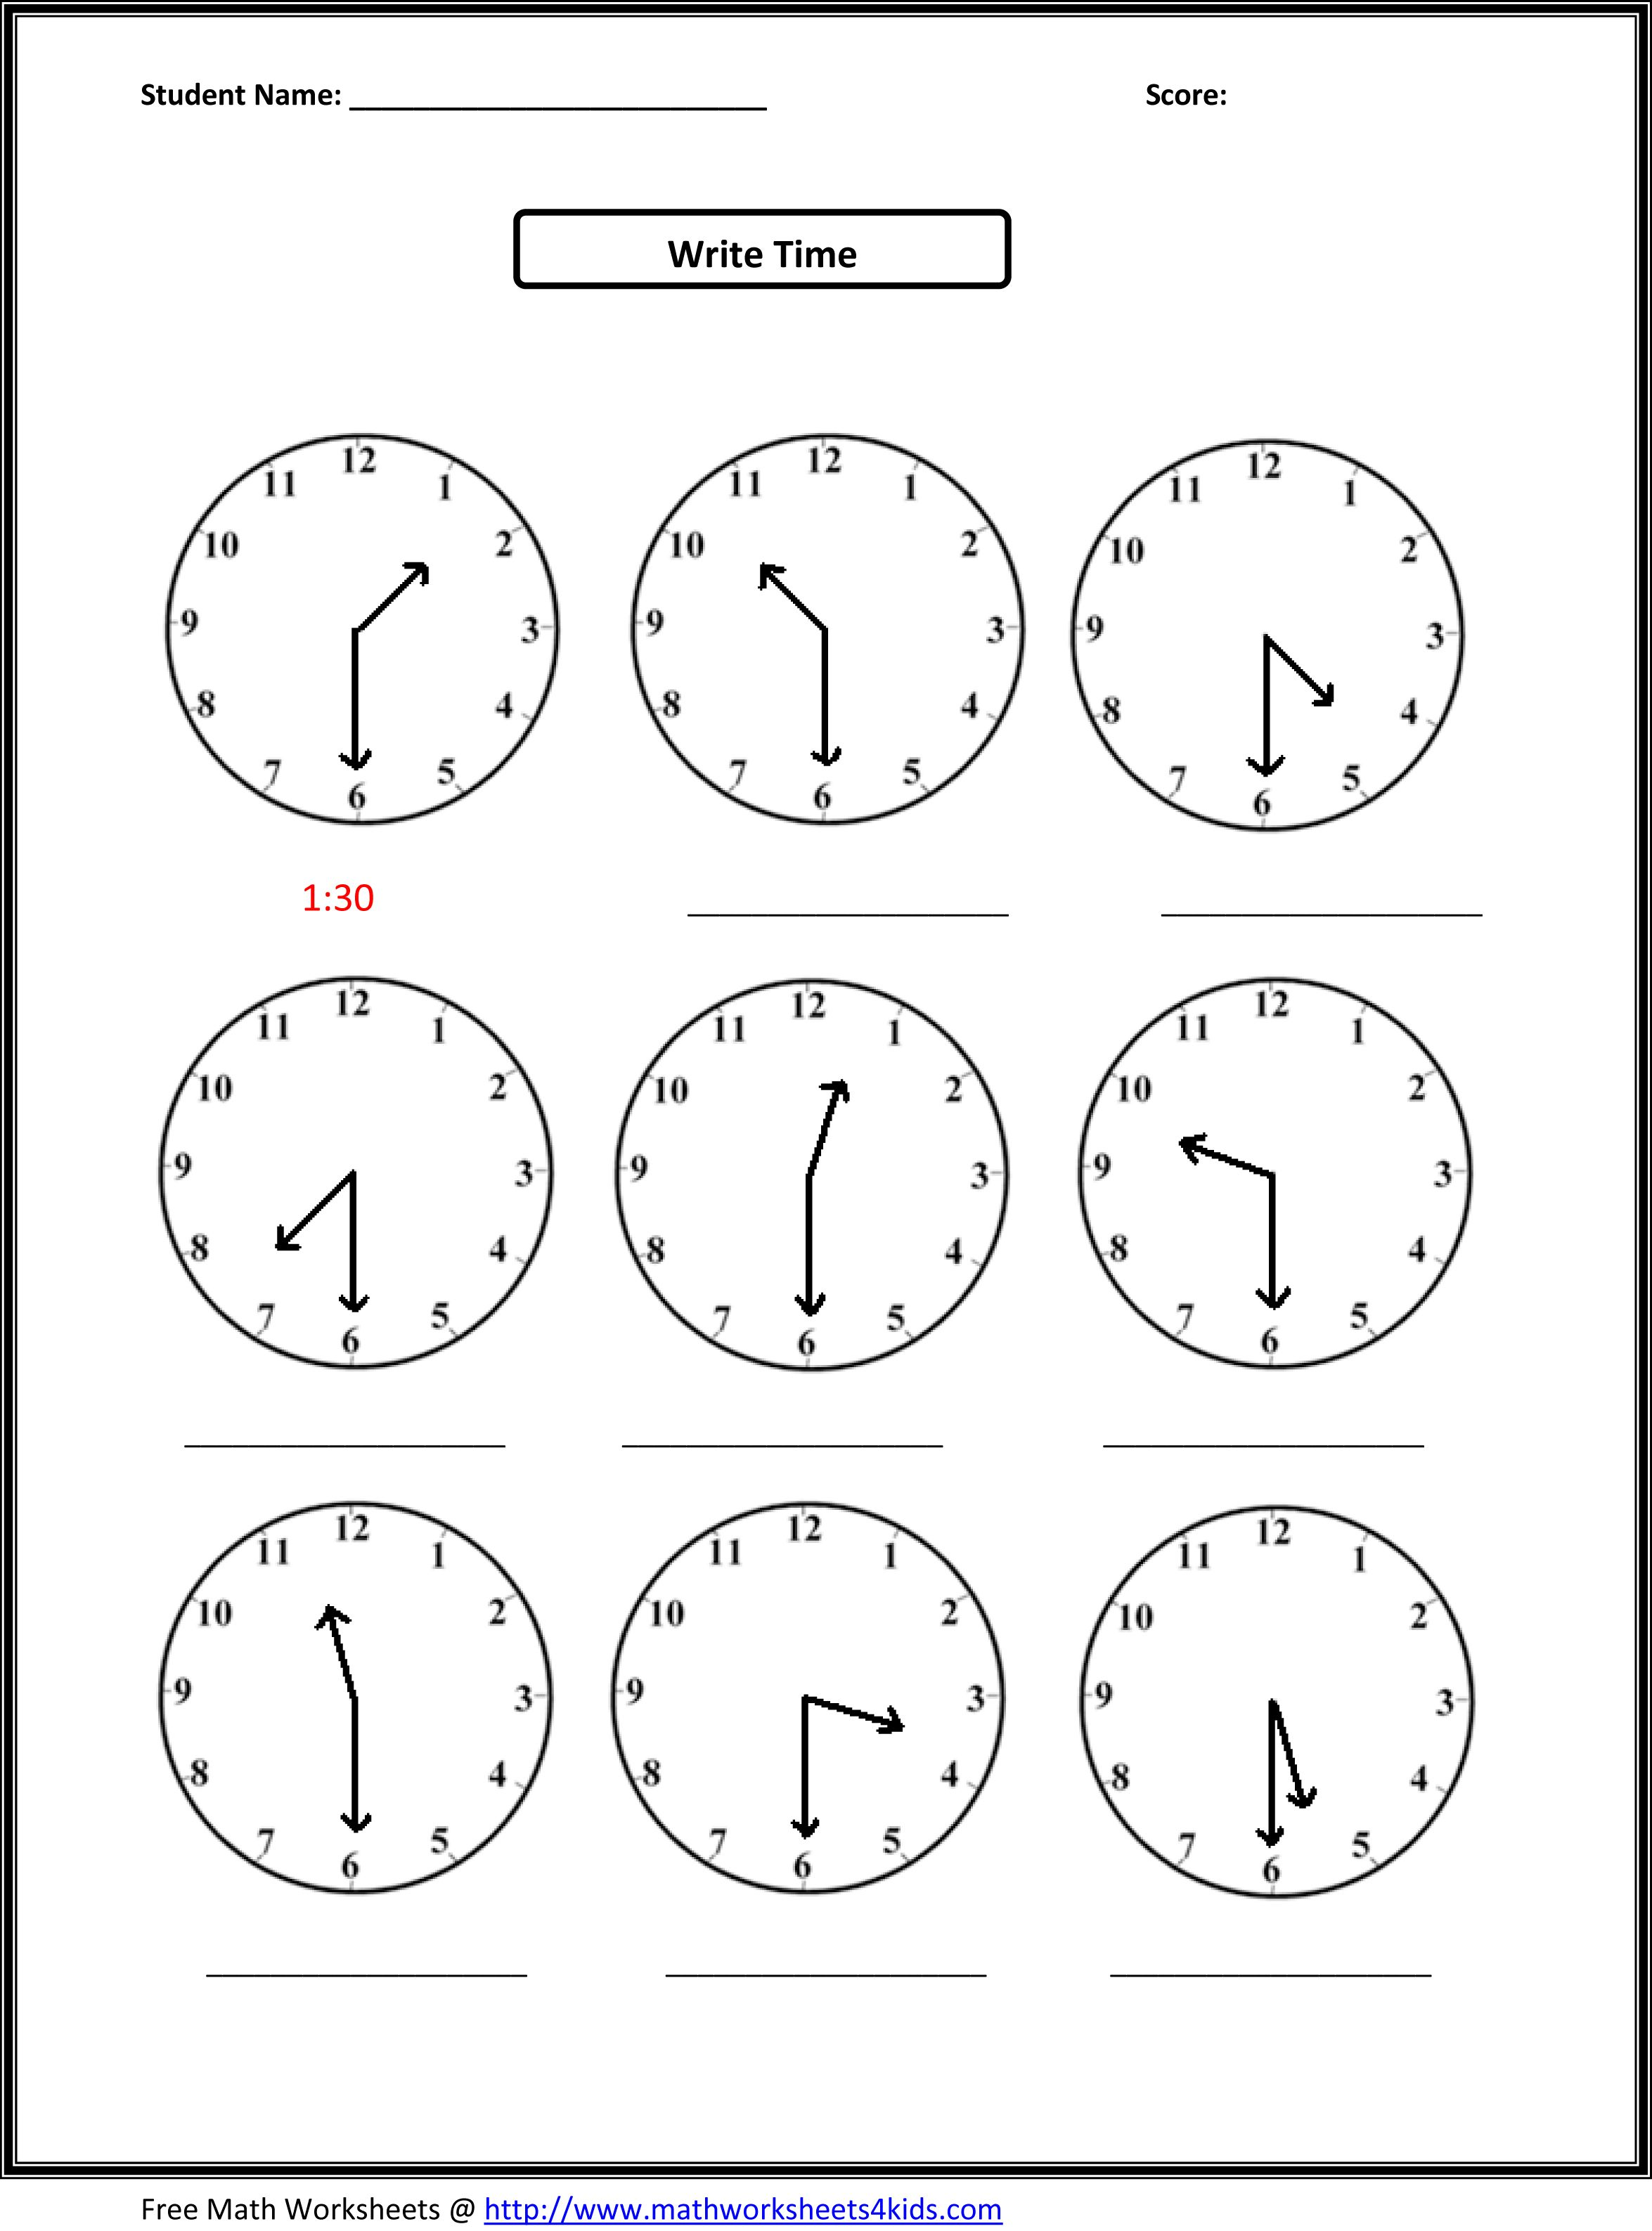 Proatmealus  Personable Worksheet On Time For Grade   Reocurent With Great Free Printable Telling Time Worksheets Nd Grade  Reocurent With Alluring Circuit Diagrams Worksheet Also Verb Tense Worksheets Rd Grade In Addition Simple Division Worksheet And Phonics Kindergarten Worksheets As Well As Multiplication Worksheets Online Additionally Intro To Geometry Worksheets From Reocurentcom With Proatmealus  Great Worksheet On Time For Grade   Reocurent With Alluring Free Printable Telling Time Worksheets Nd Grade  Reocurent And Personable Circuit Diagrams Worksheet Also Verb Tense Worksheets Rd Grade In Addition Simple Division Worksheet From Reocurentcom